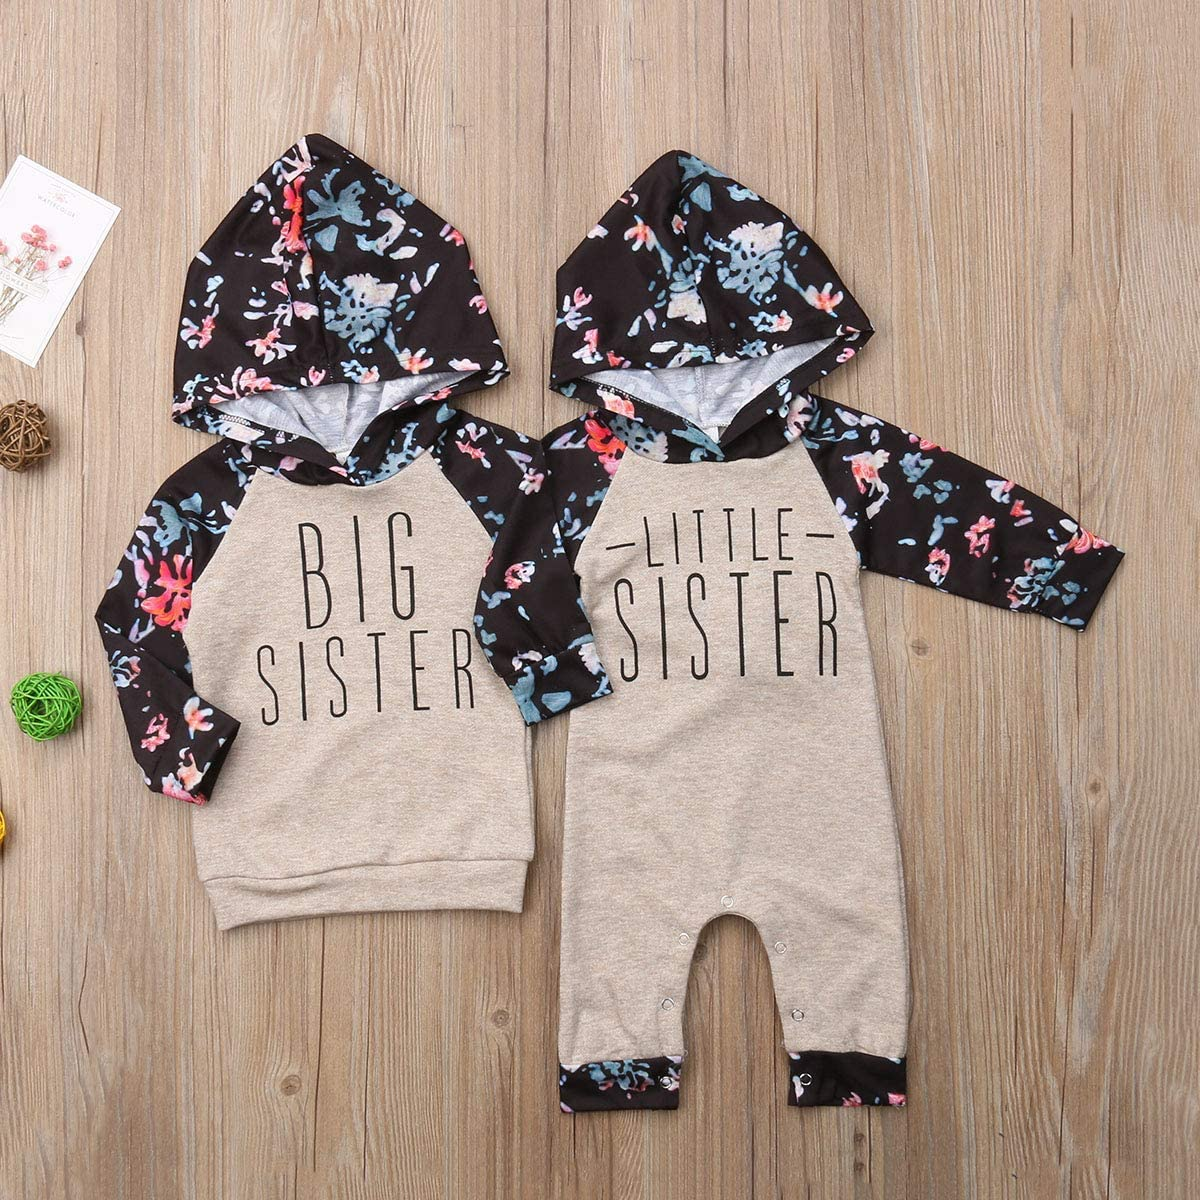 WANGSGOGO Baby Girl Sister Matching Clothes Floral Hoodie Sweatshirts Tops Long Sleeve Bodysuit Kids Jumpsuit Romper Outfit